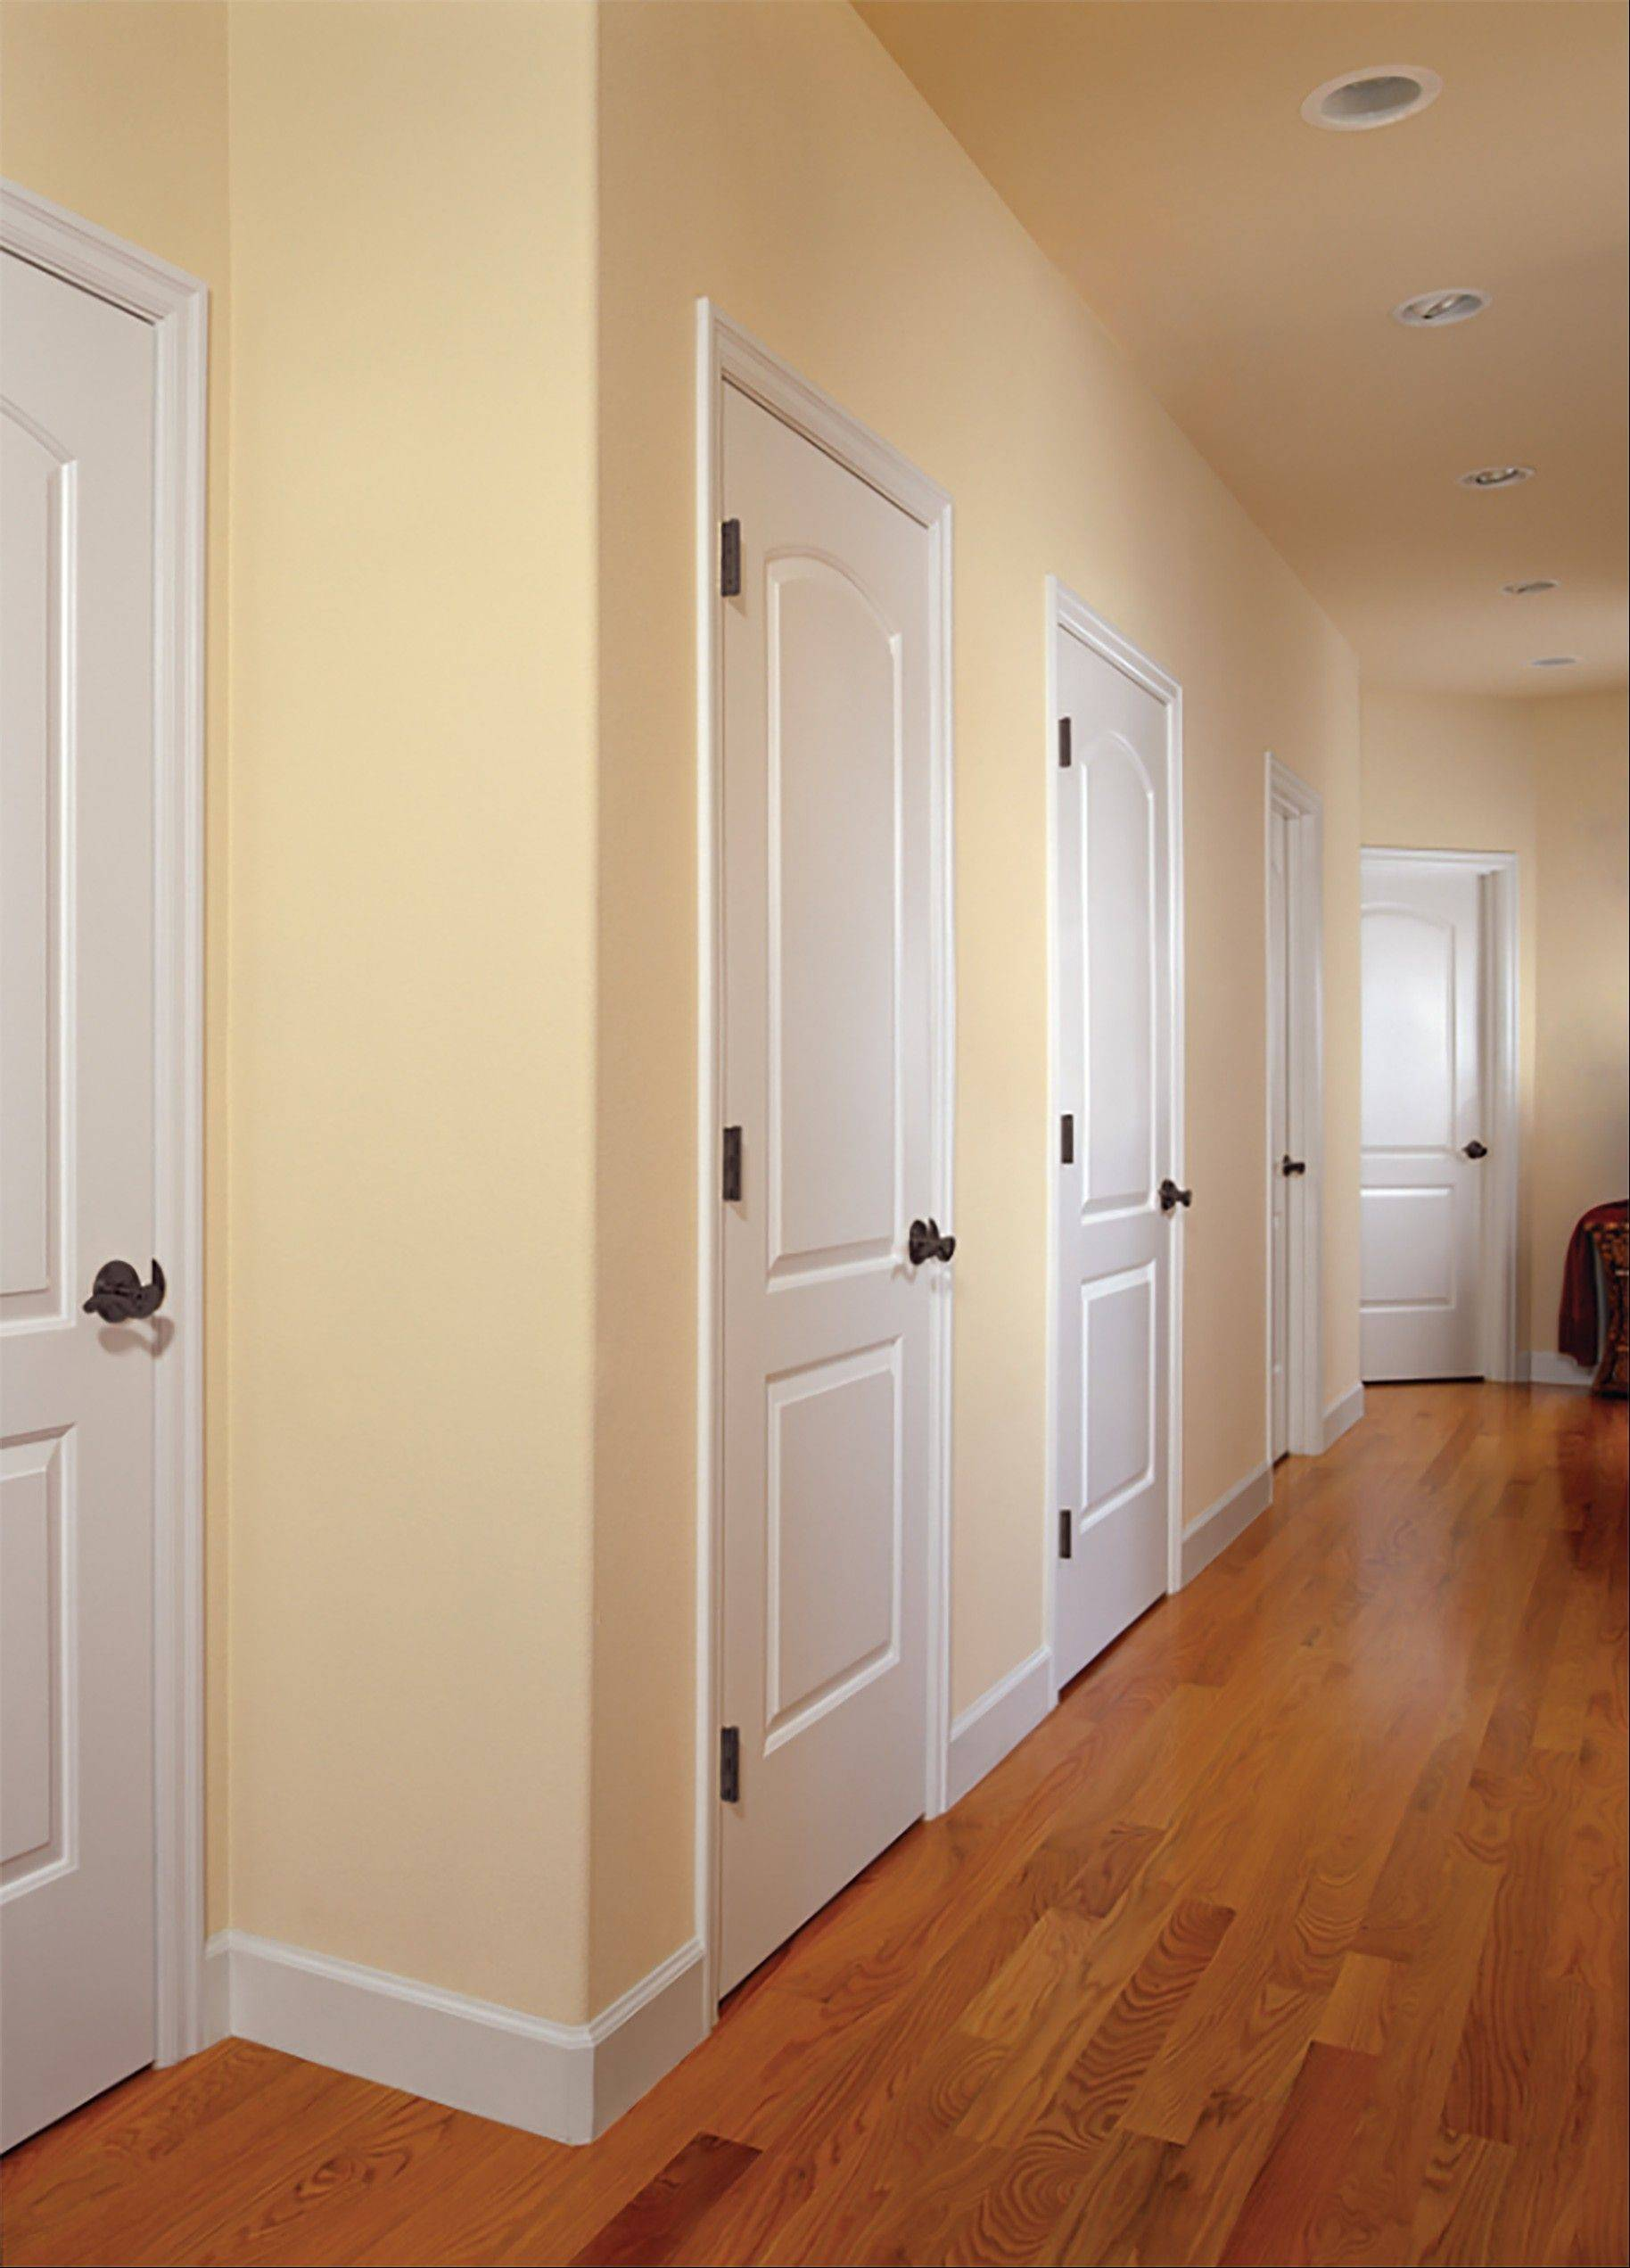 Here is the after picture of a customer's makeover with new white doors and trim from HomeStory Chicago.